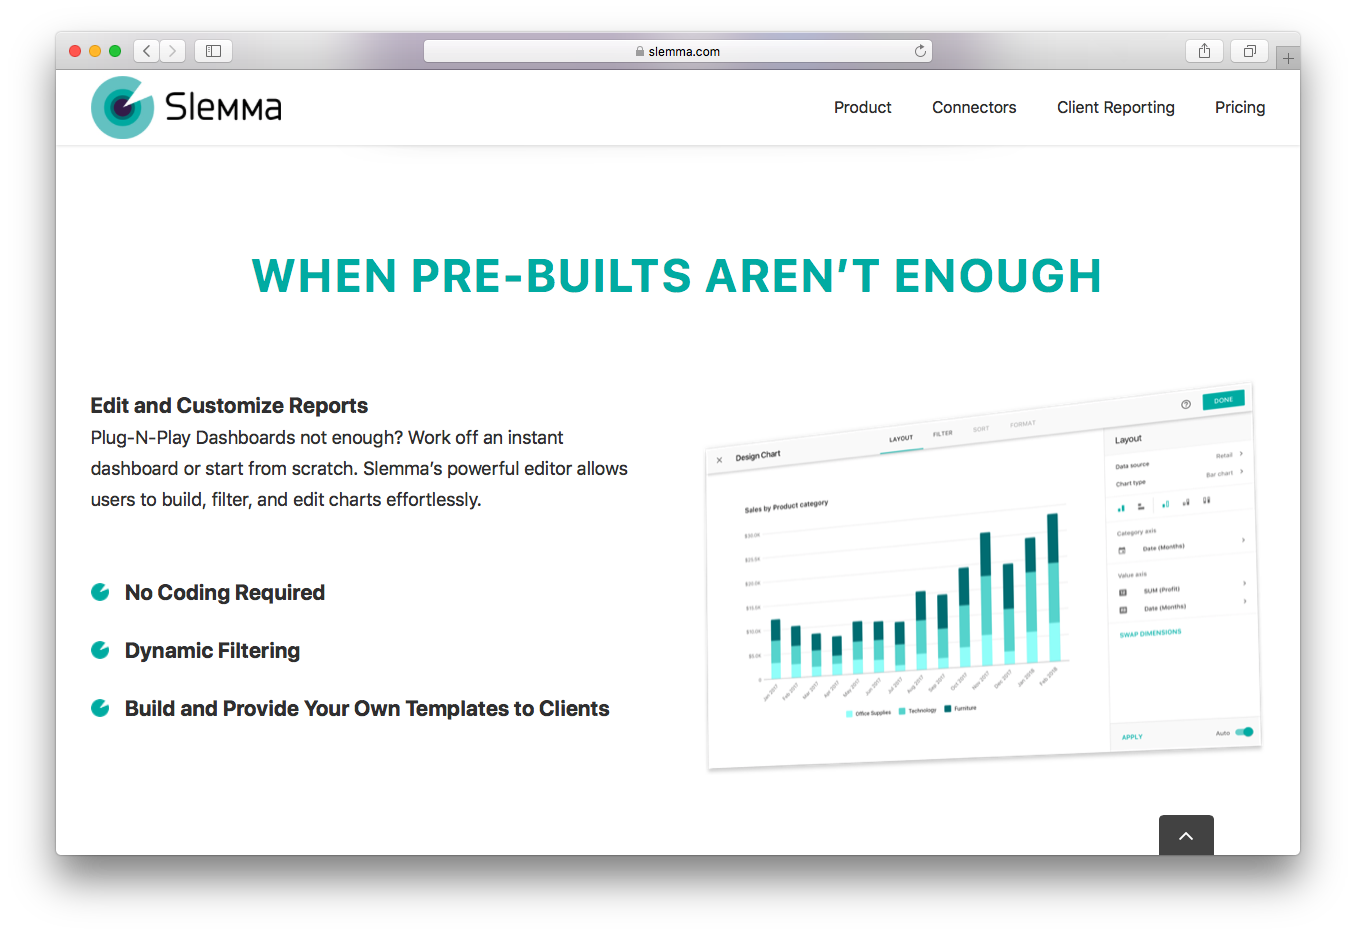 Slemma edit customize reports no coding dynamic filtering build provide templates clients